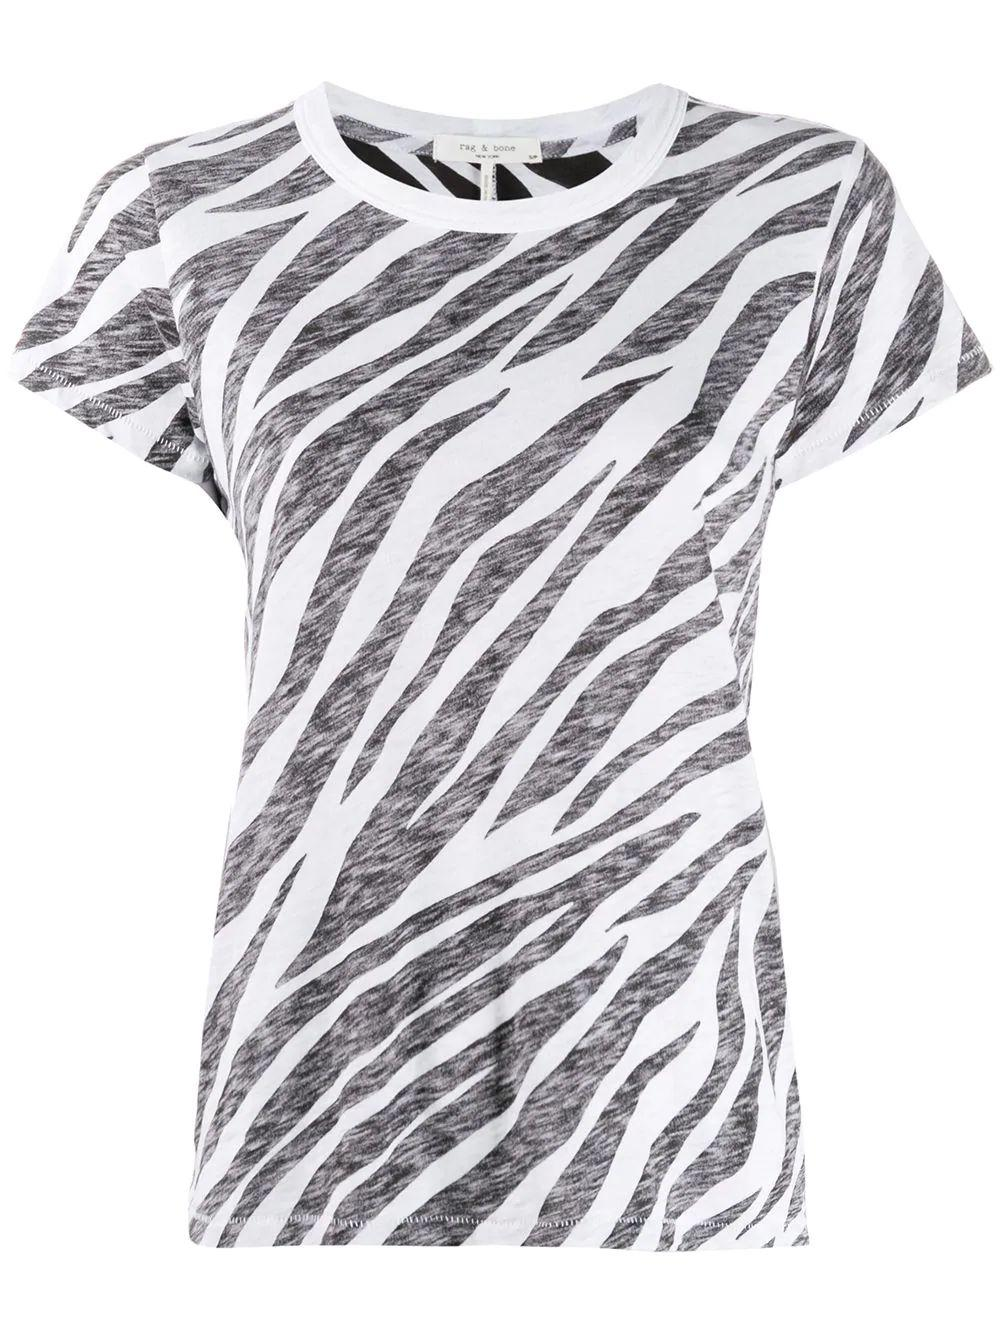 All Over Zebra Tee Item # WCC19HT029CH29